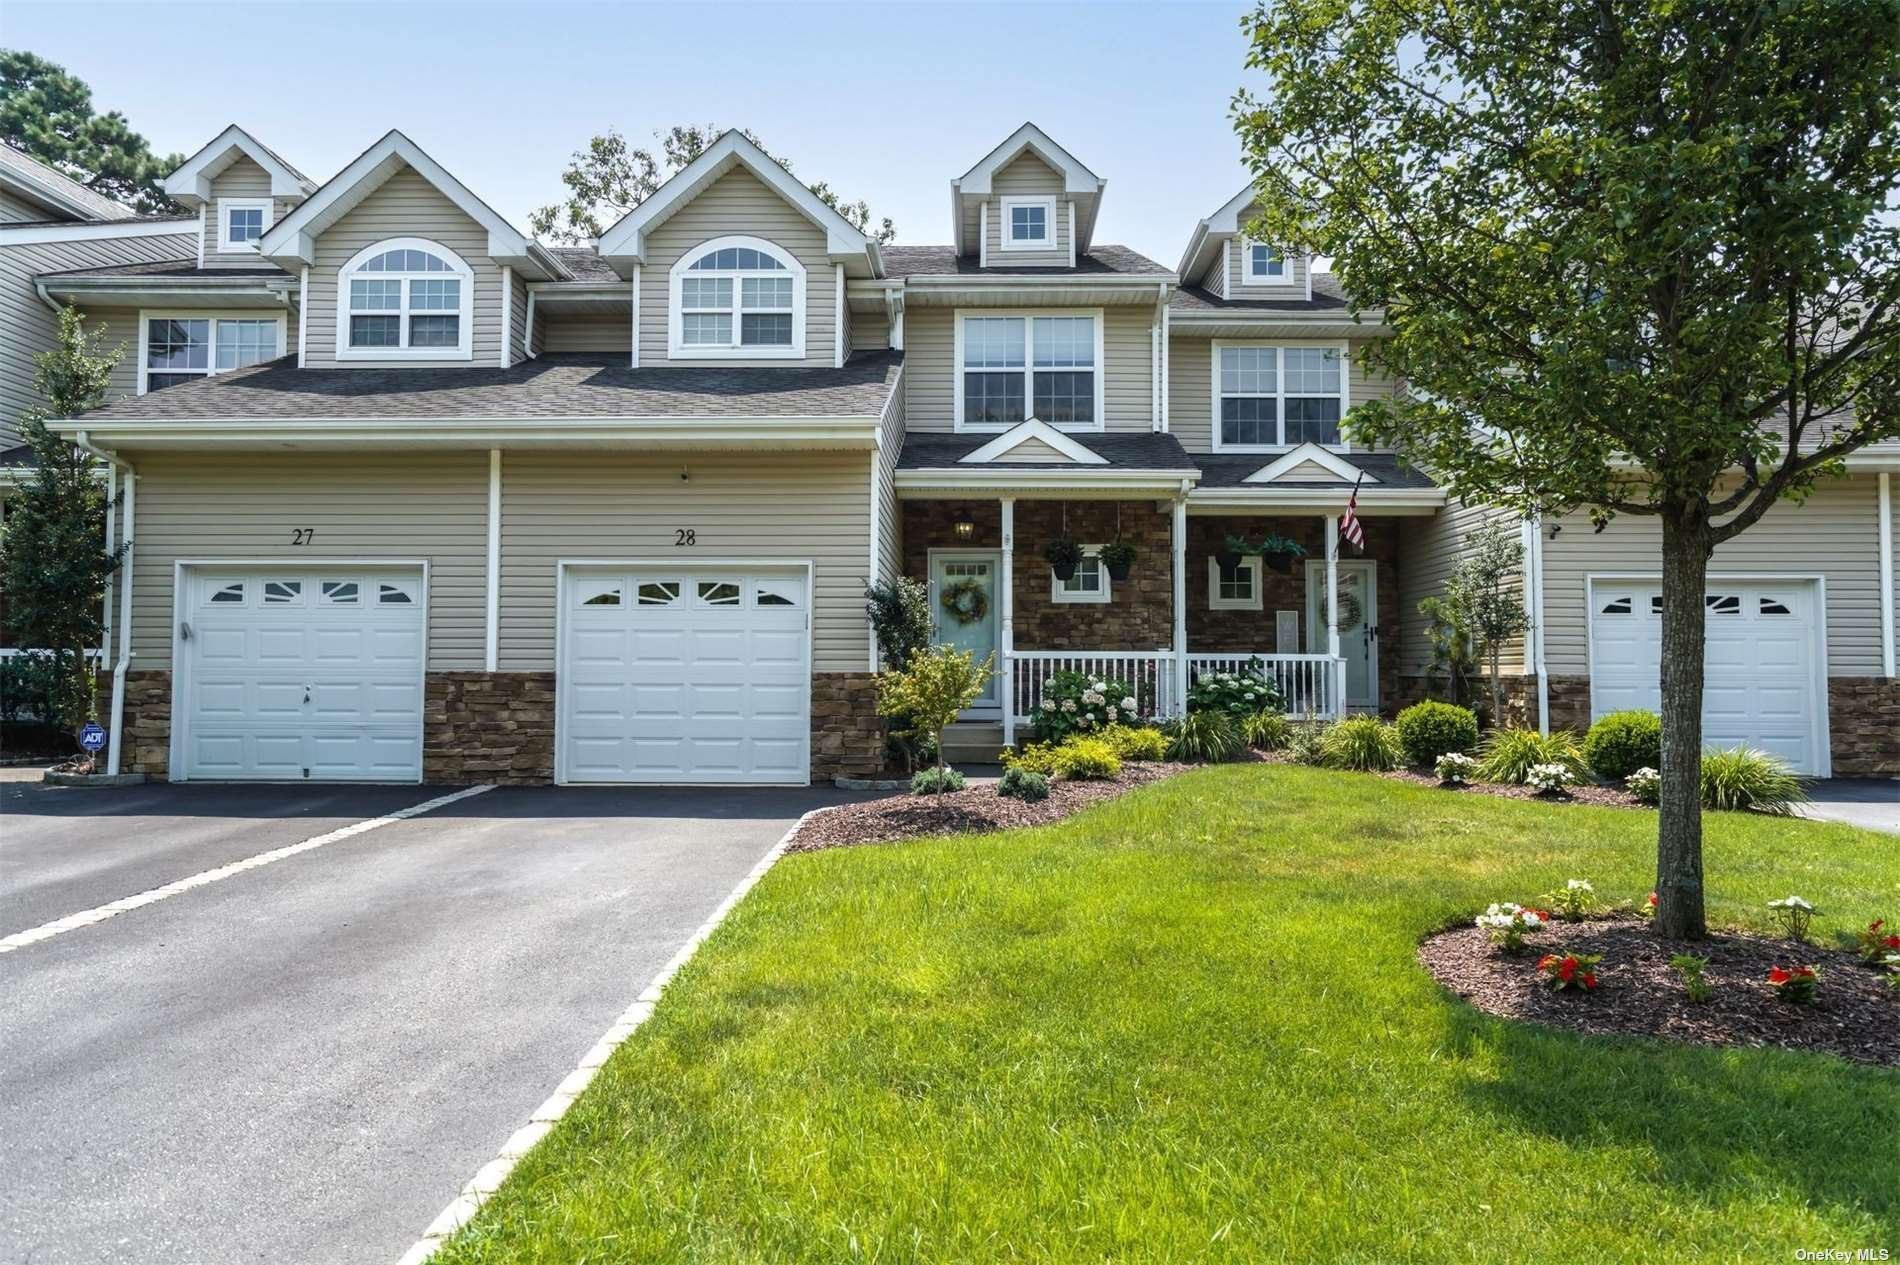 28 Terrace Lane #28, Patchogue, NY 11772 - MLS#: 3335112